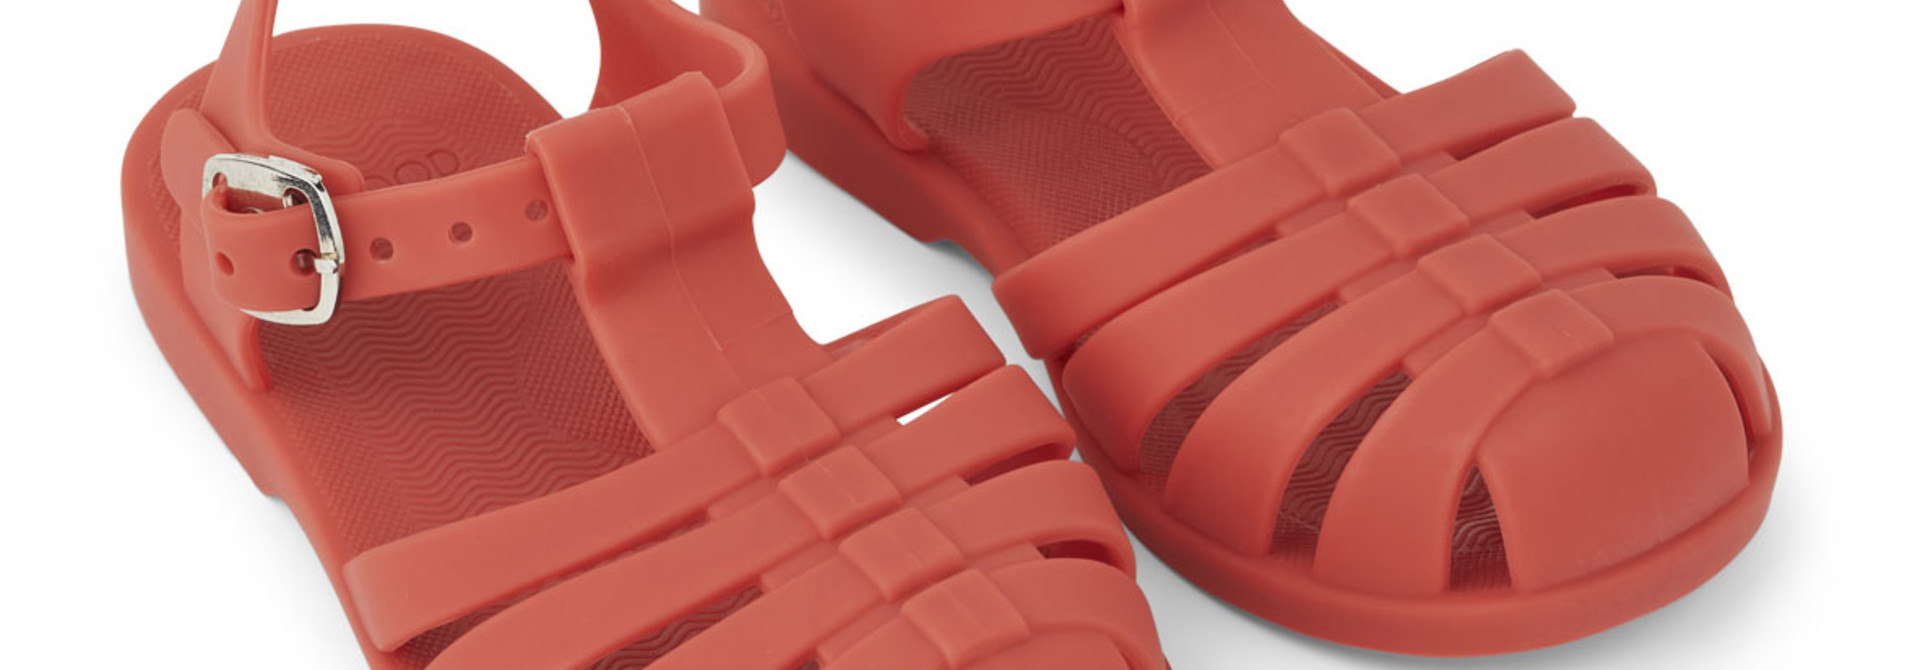 Bre Sandals - Apple red